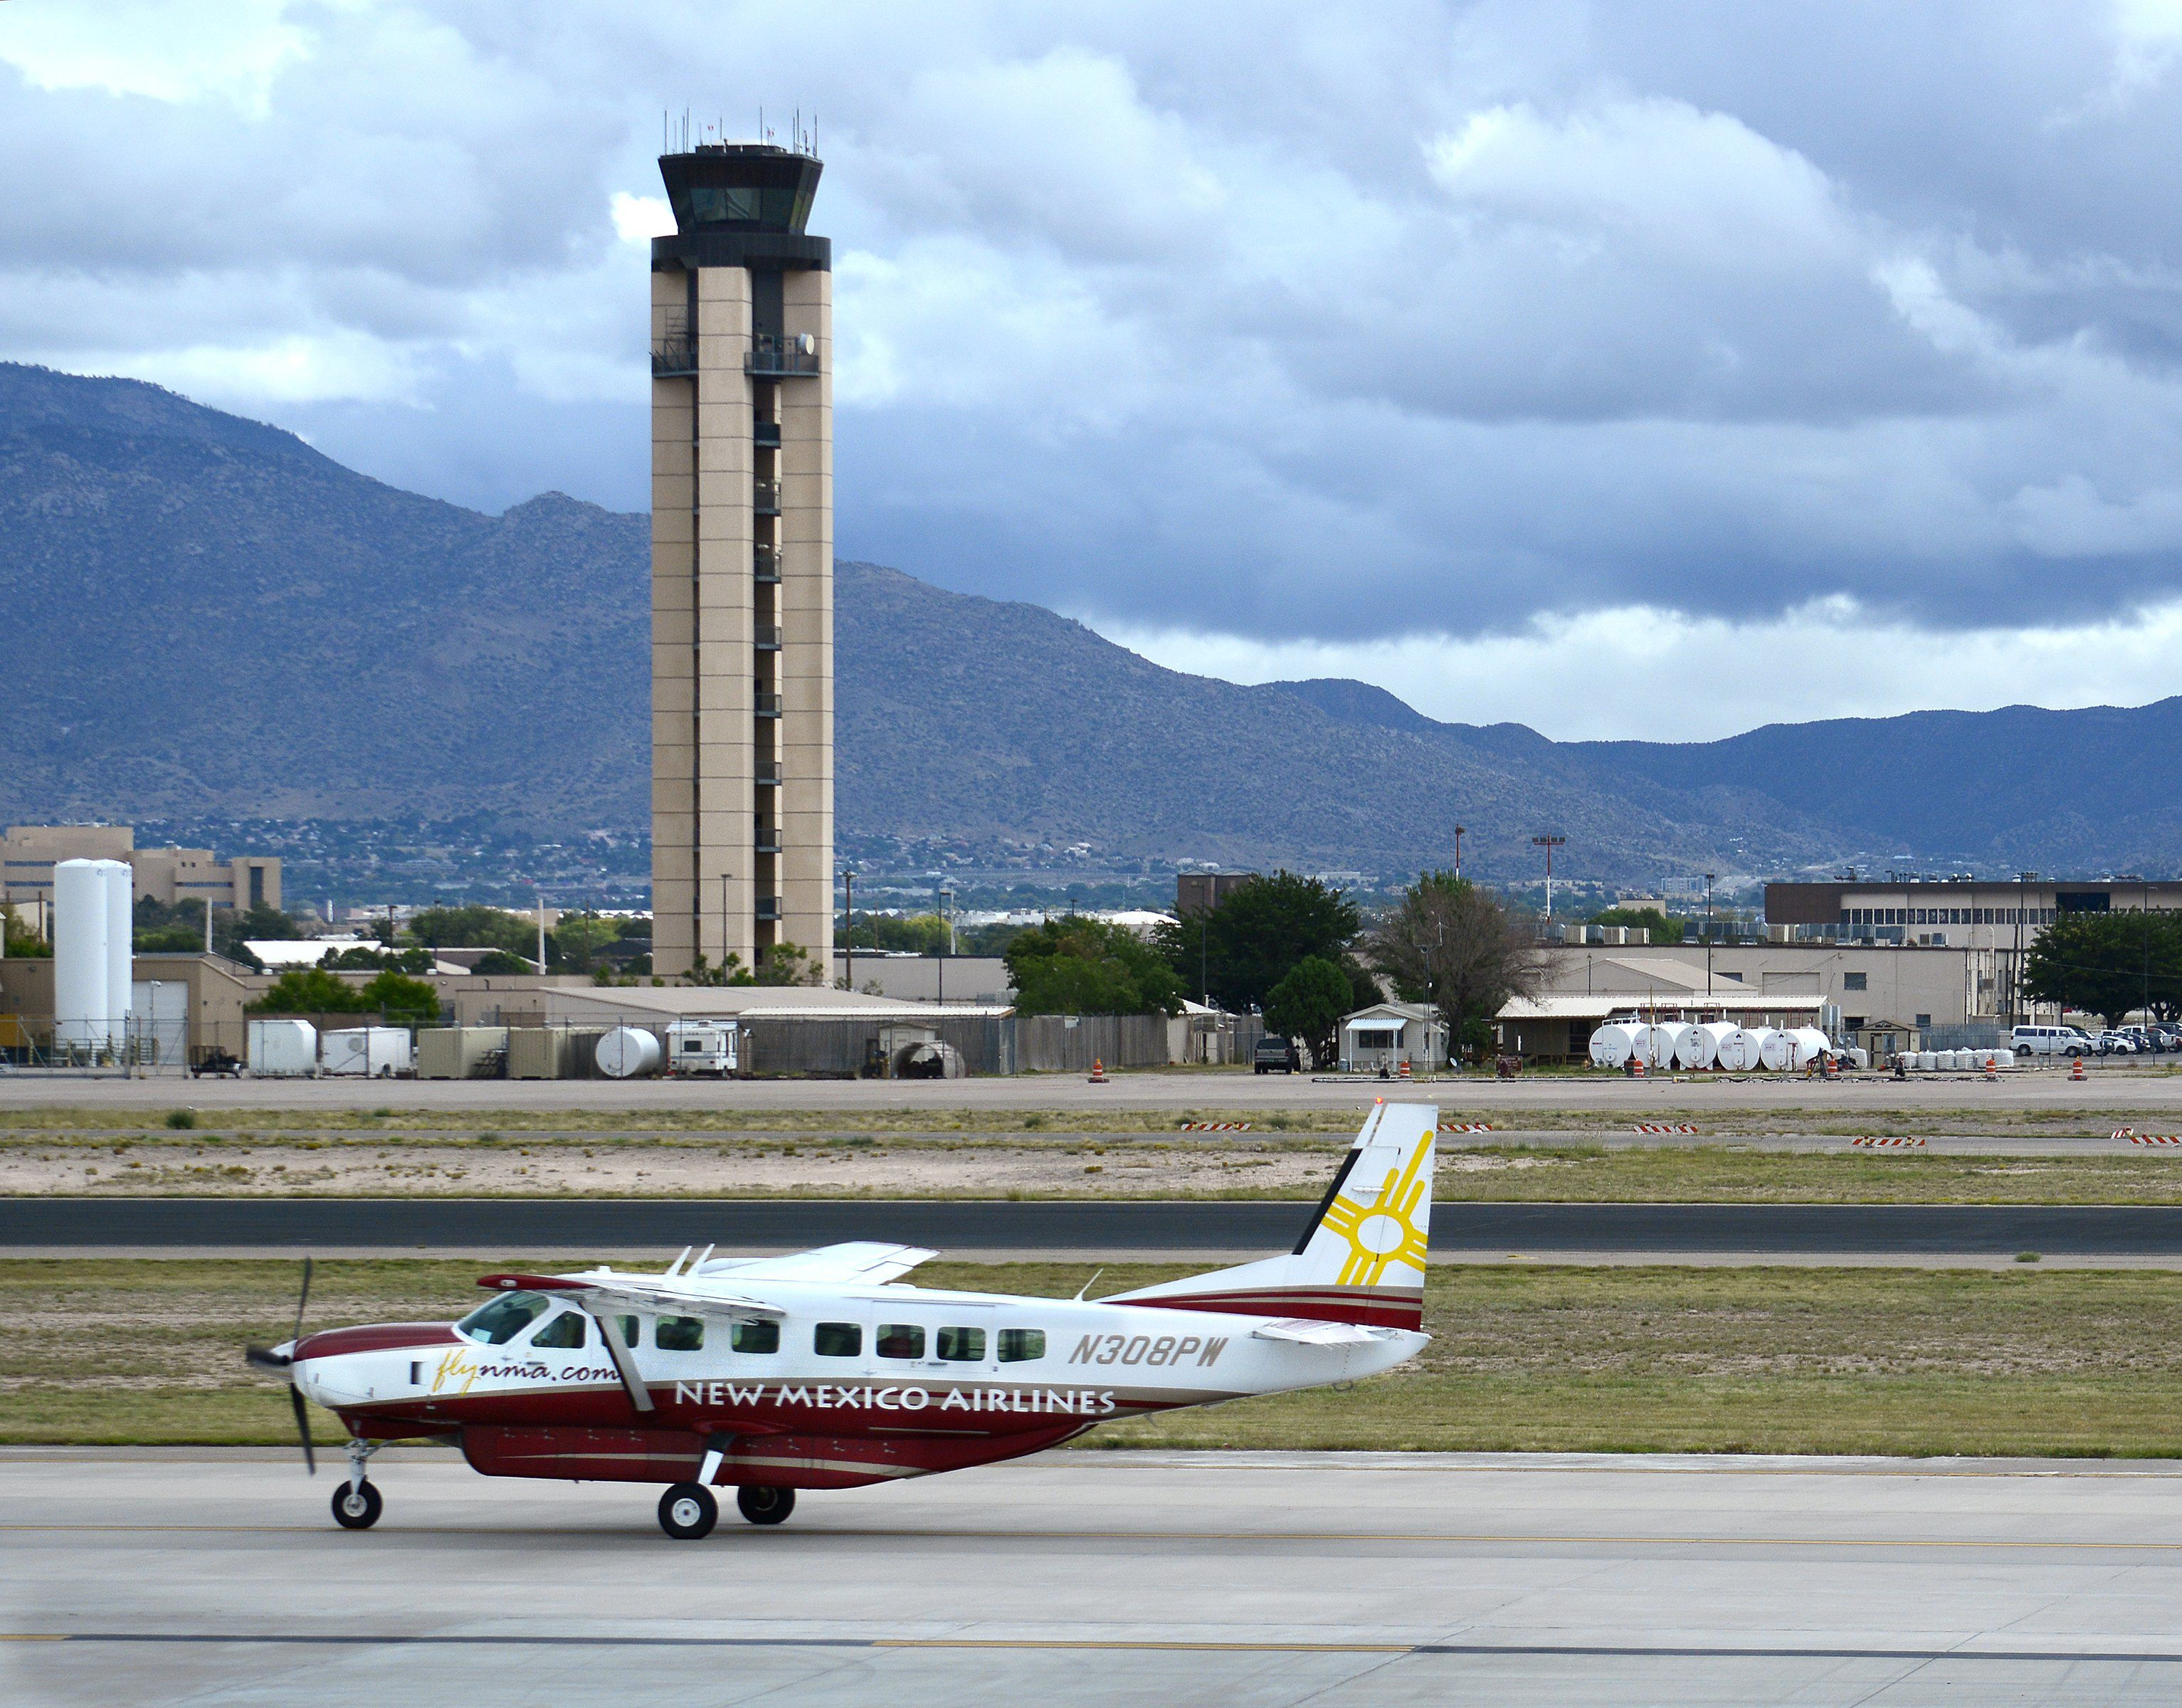 A Cessna Caravan operated by New Mexico Airlines taxis to the runway at Albuquerque International Sunport.